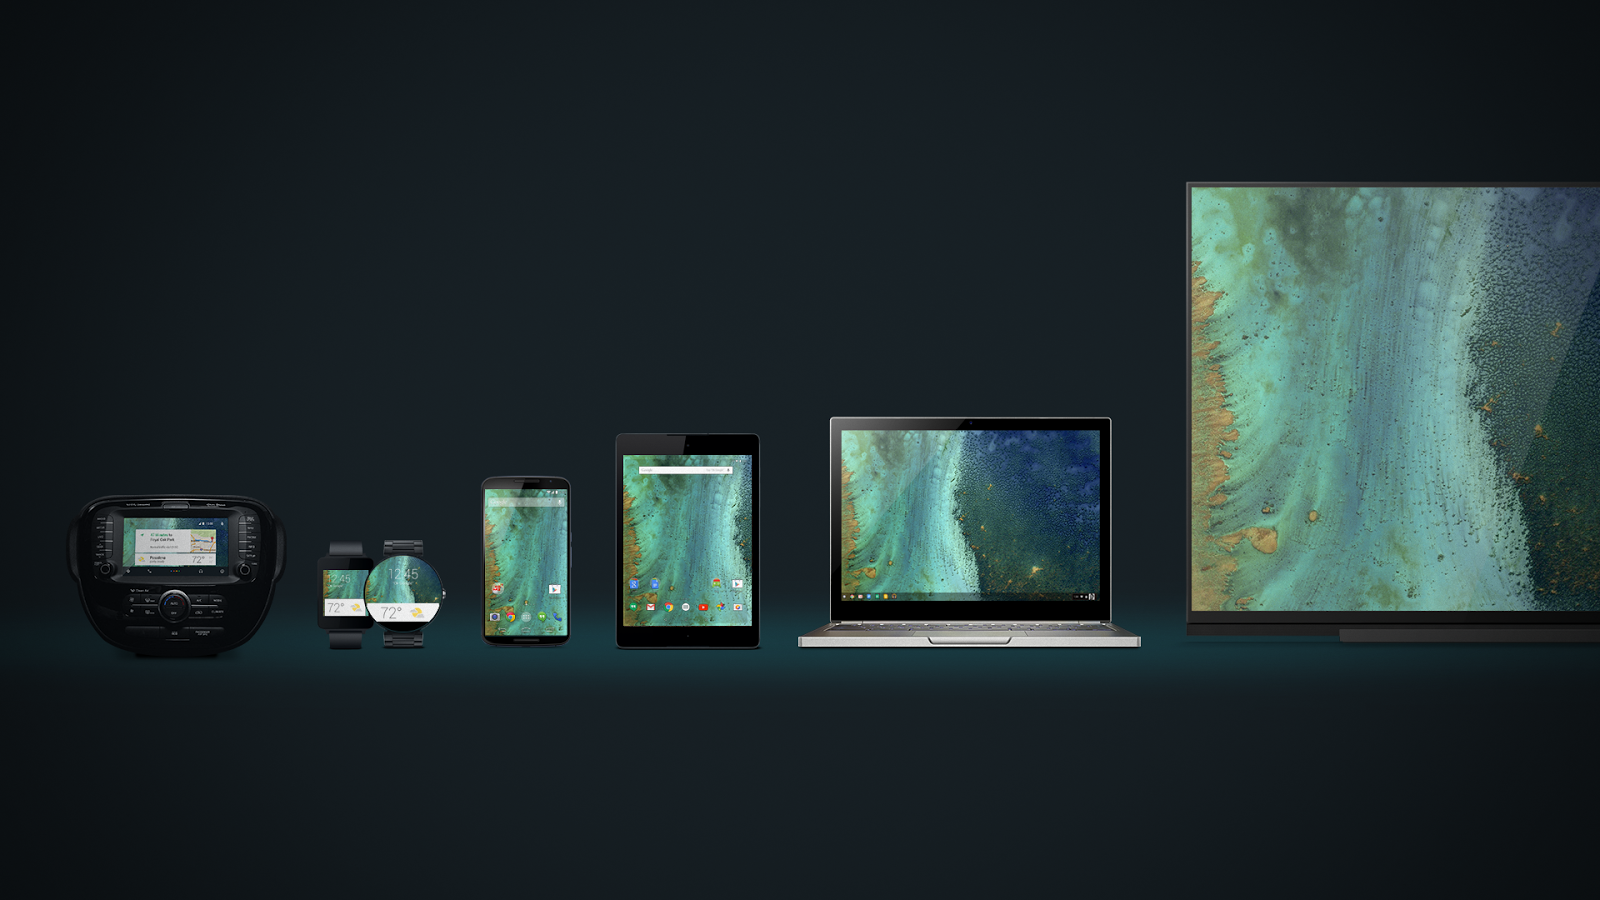 Google revealed its next Android operating system, Android M. New features of Android M include improved web experience and simplified application permission settings.